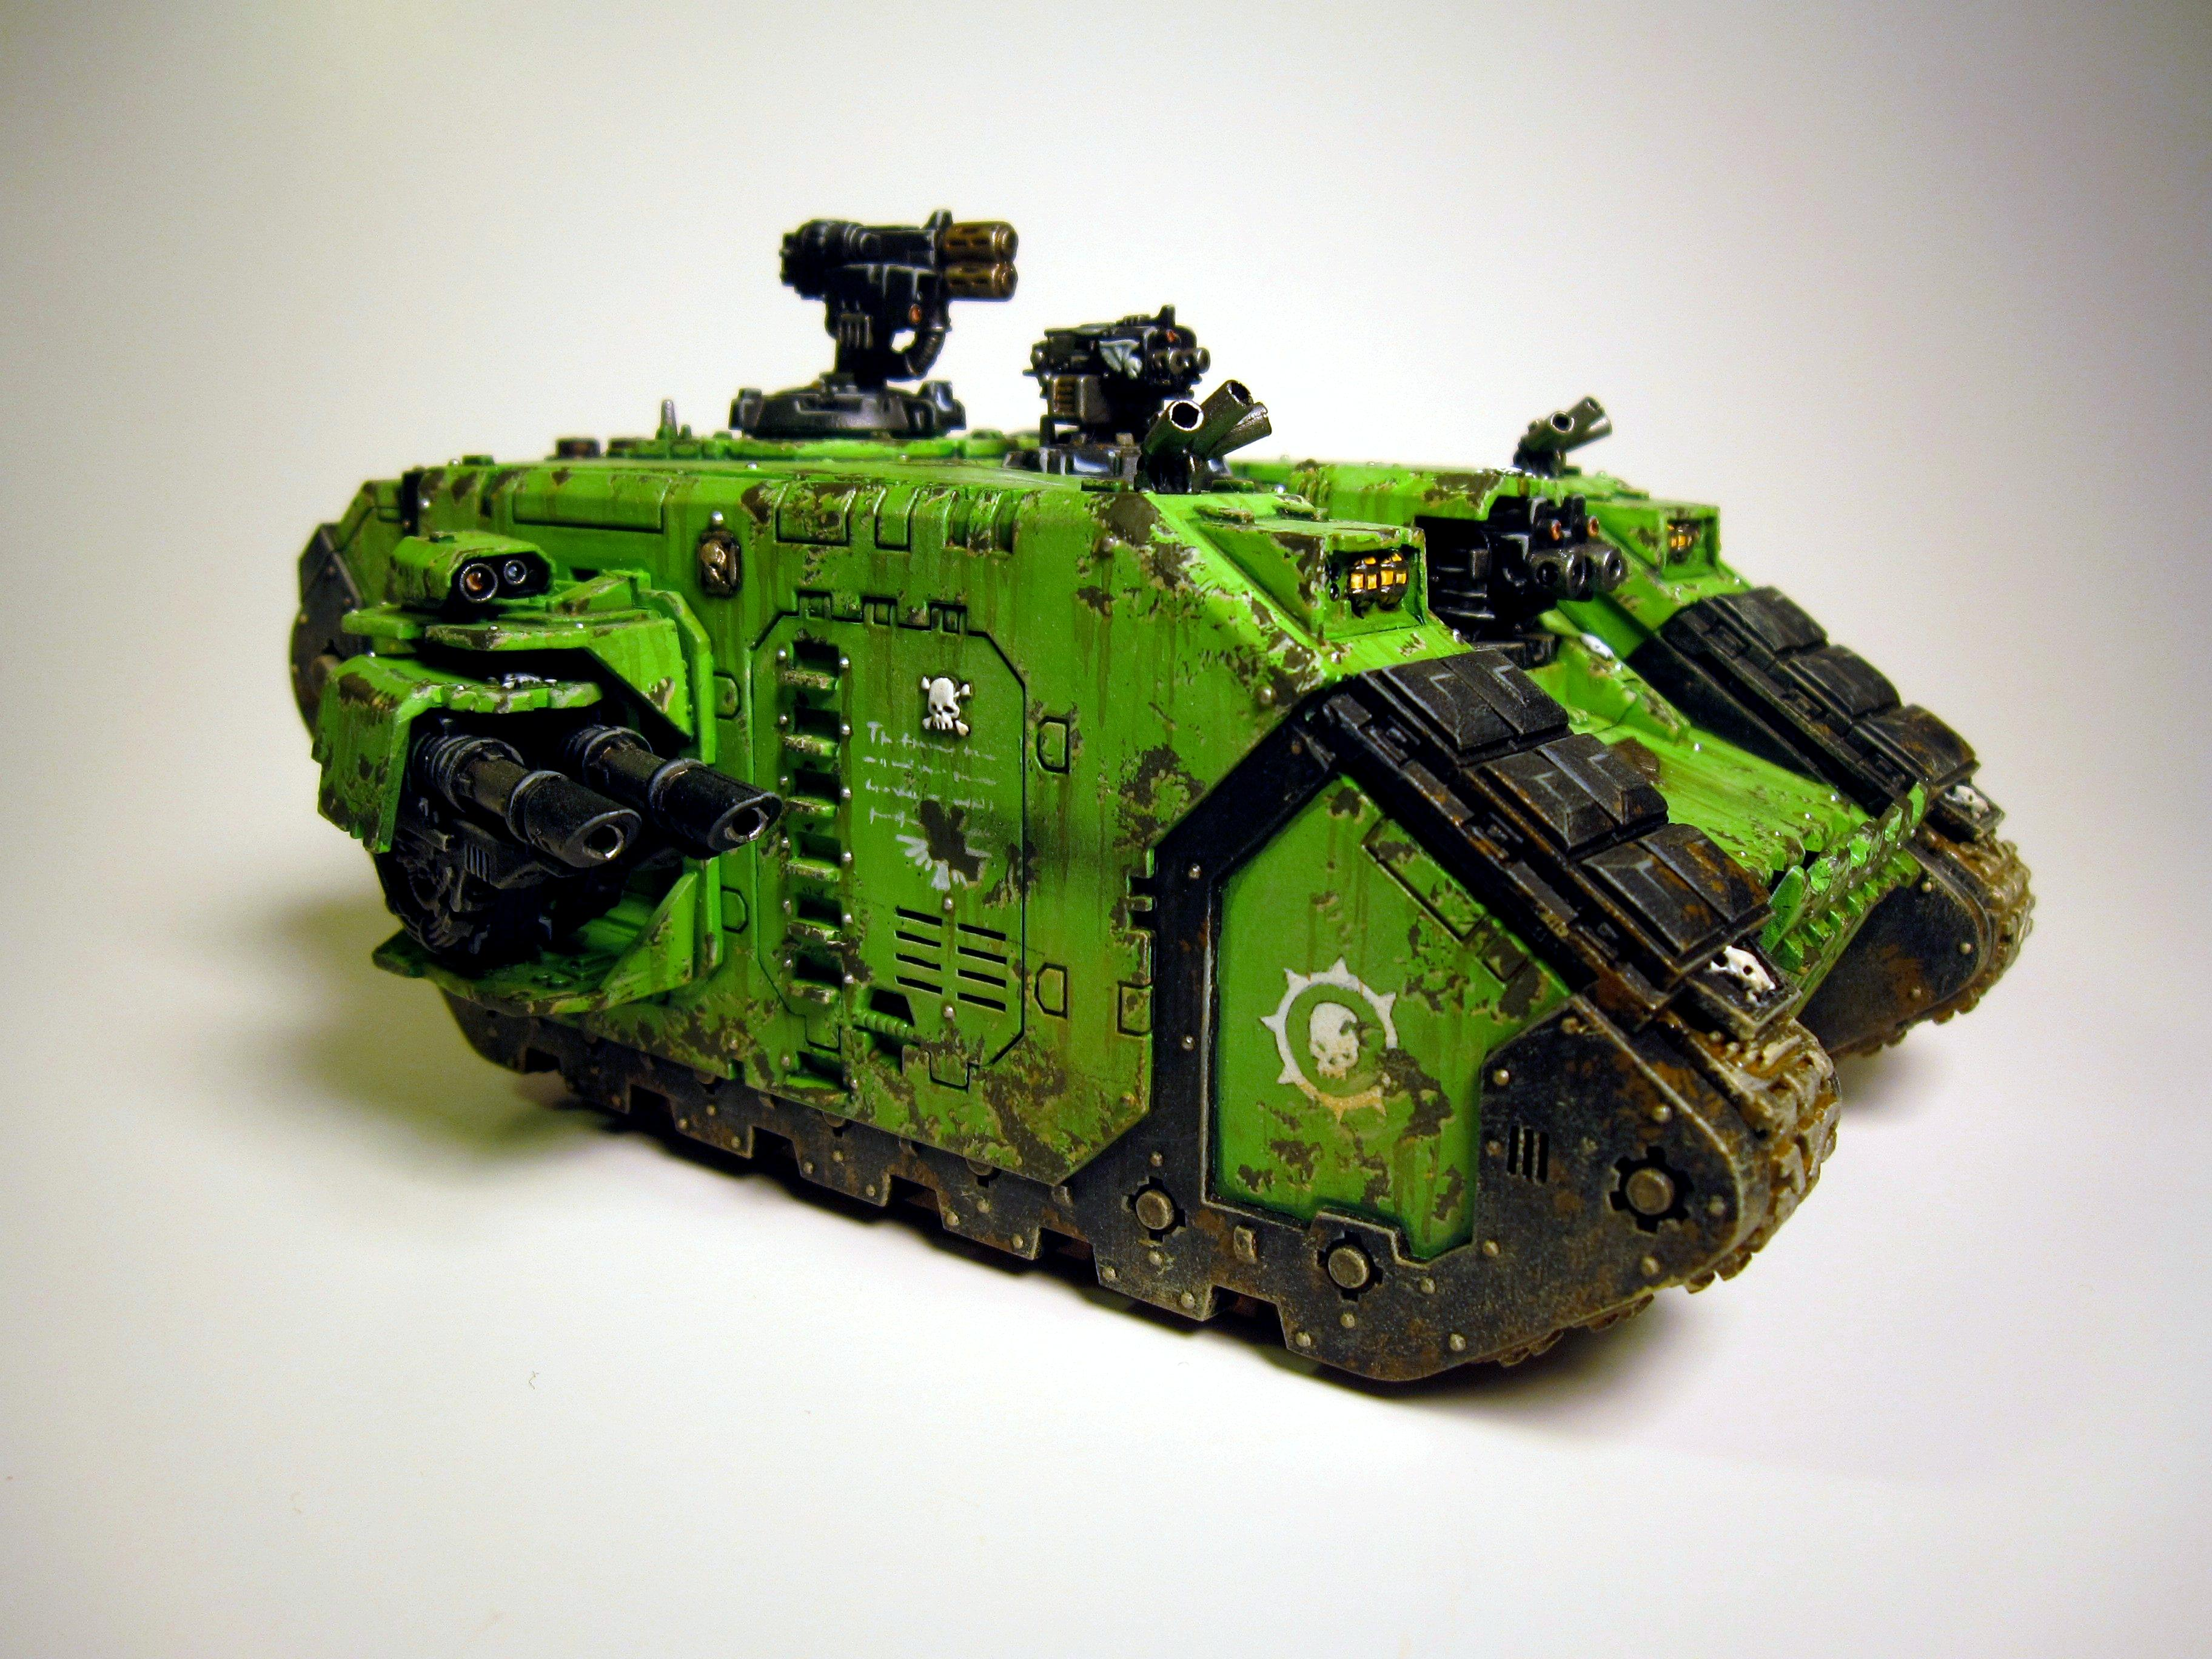 Badab War, Land Raider, Sons Of Medusa, Space Marines, Warhammer 40,000